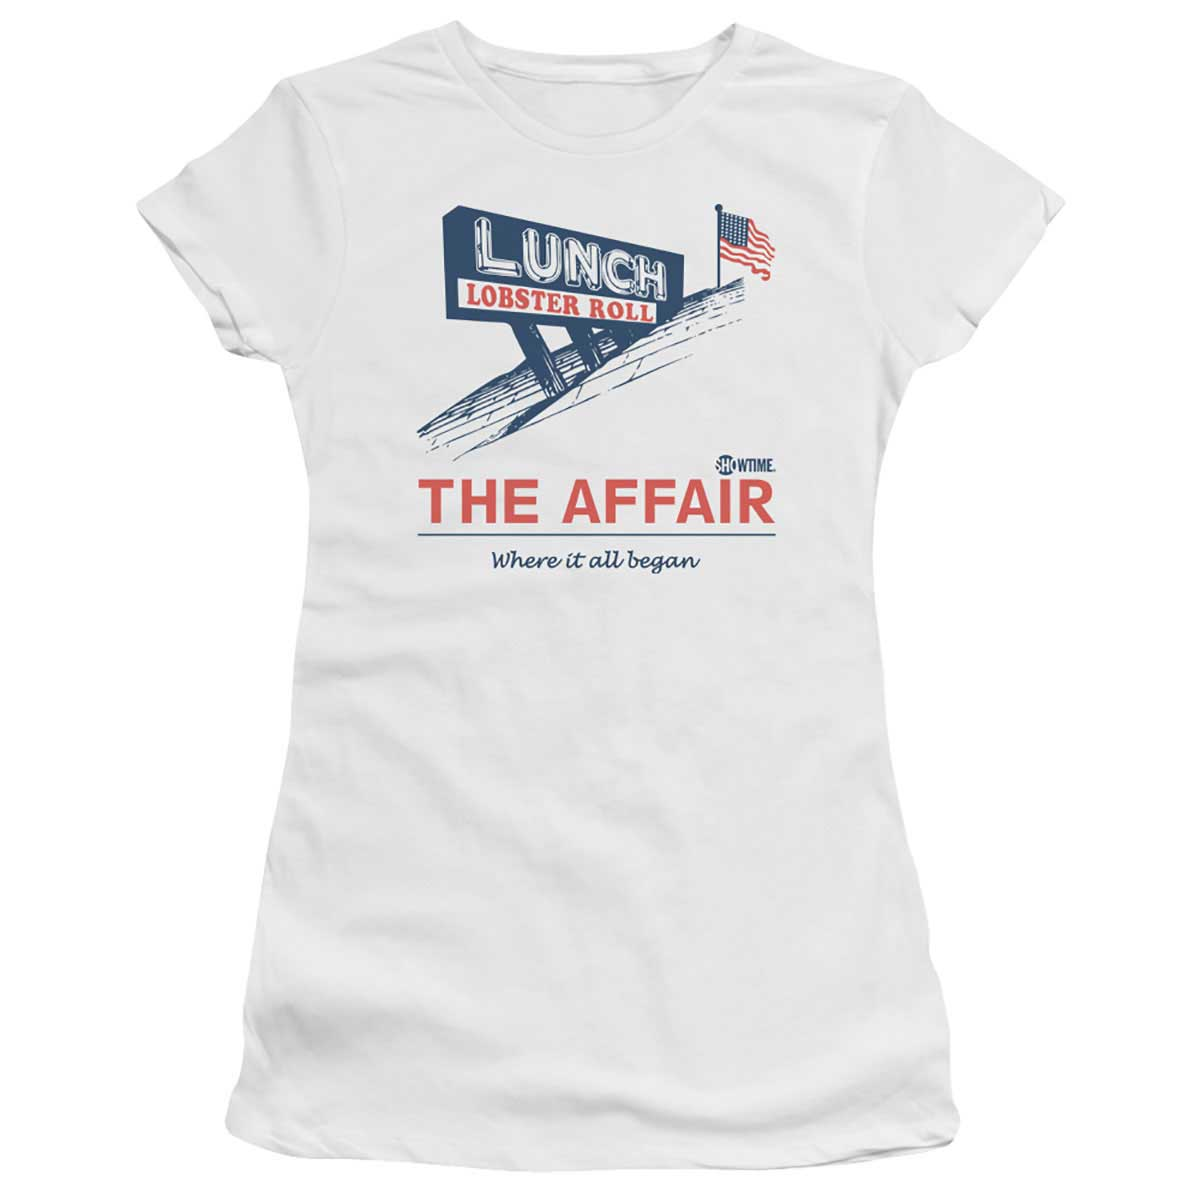 The Affair Lobster Roll Women's Slim Fit T-Shirt